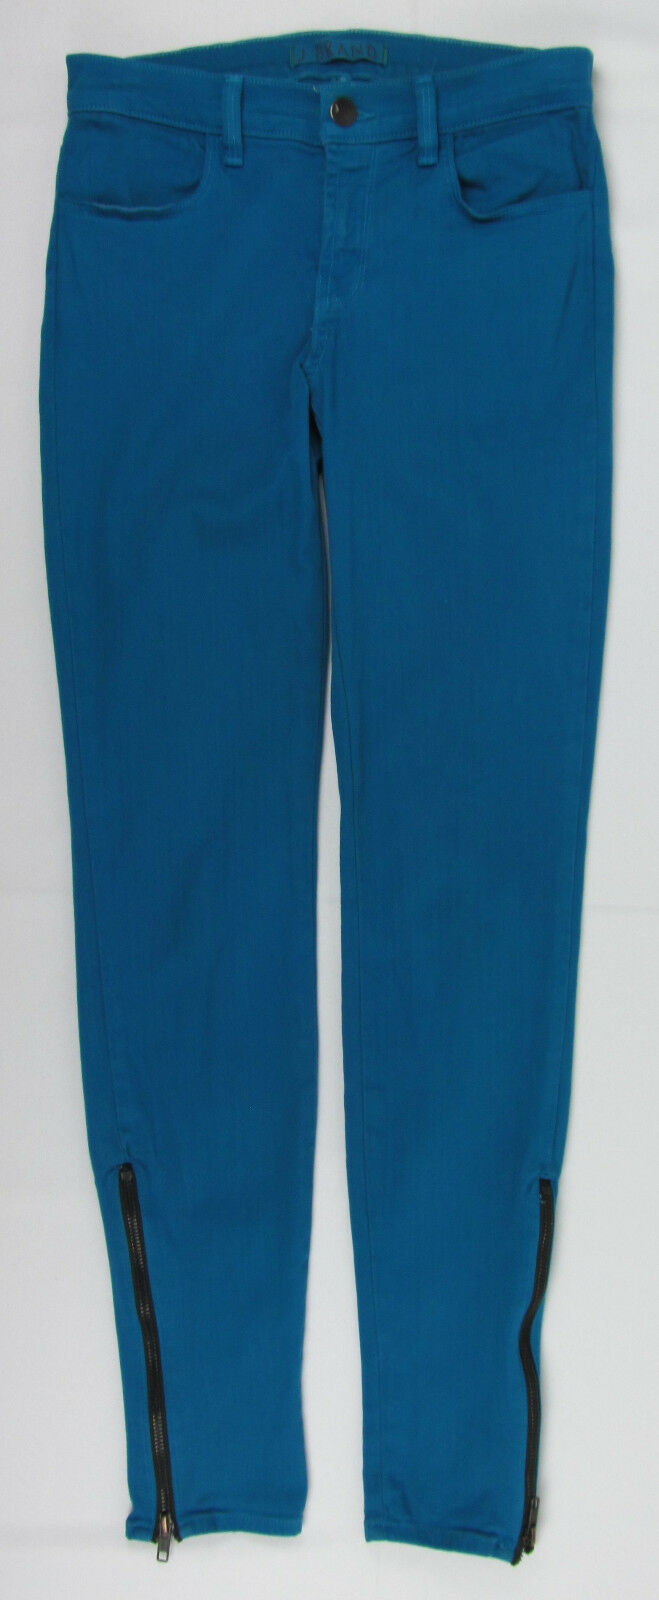 J Brand jeans Azure Ankle Skinny Zipper cuffs USA Made Teal Womens Size 25 image 3